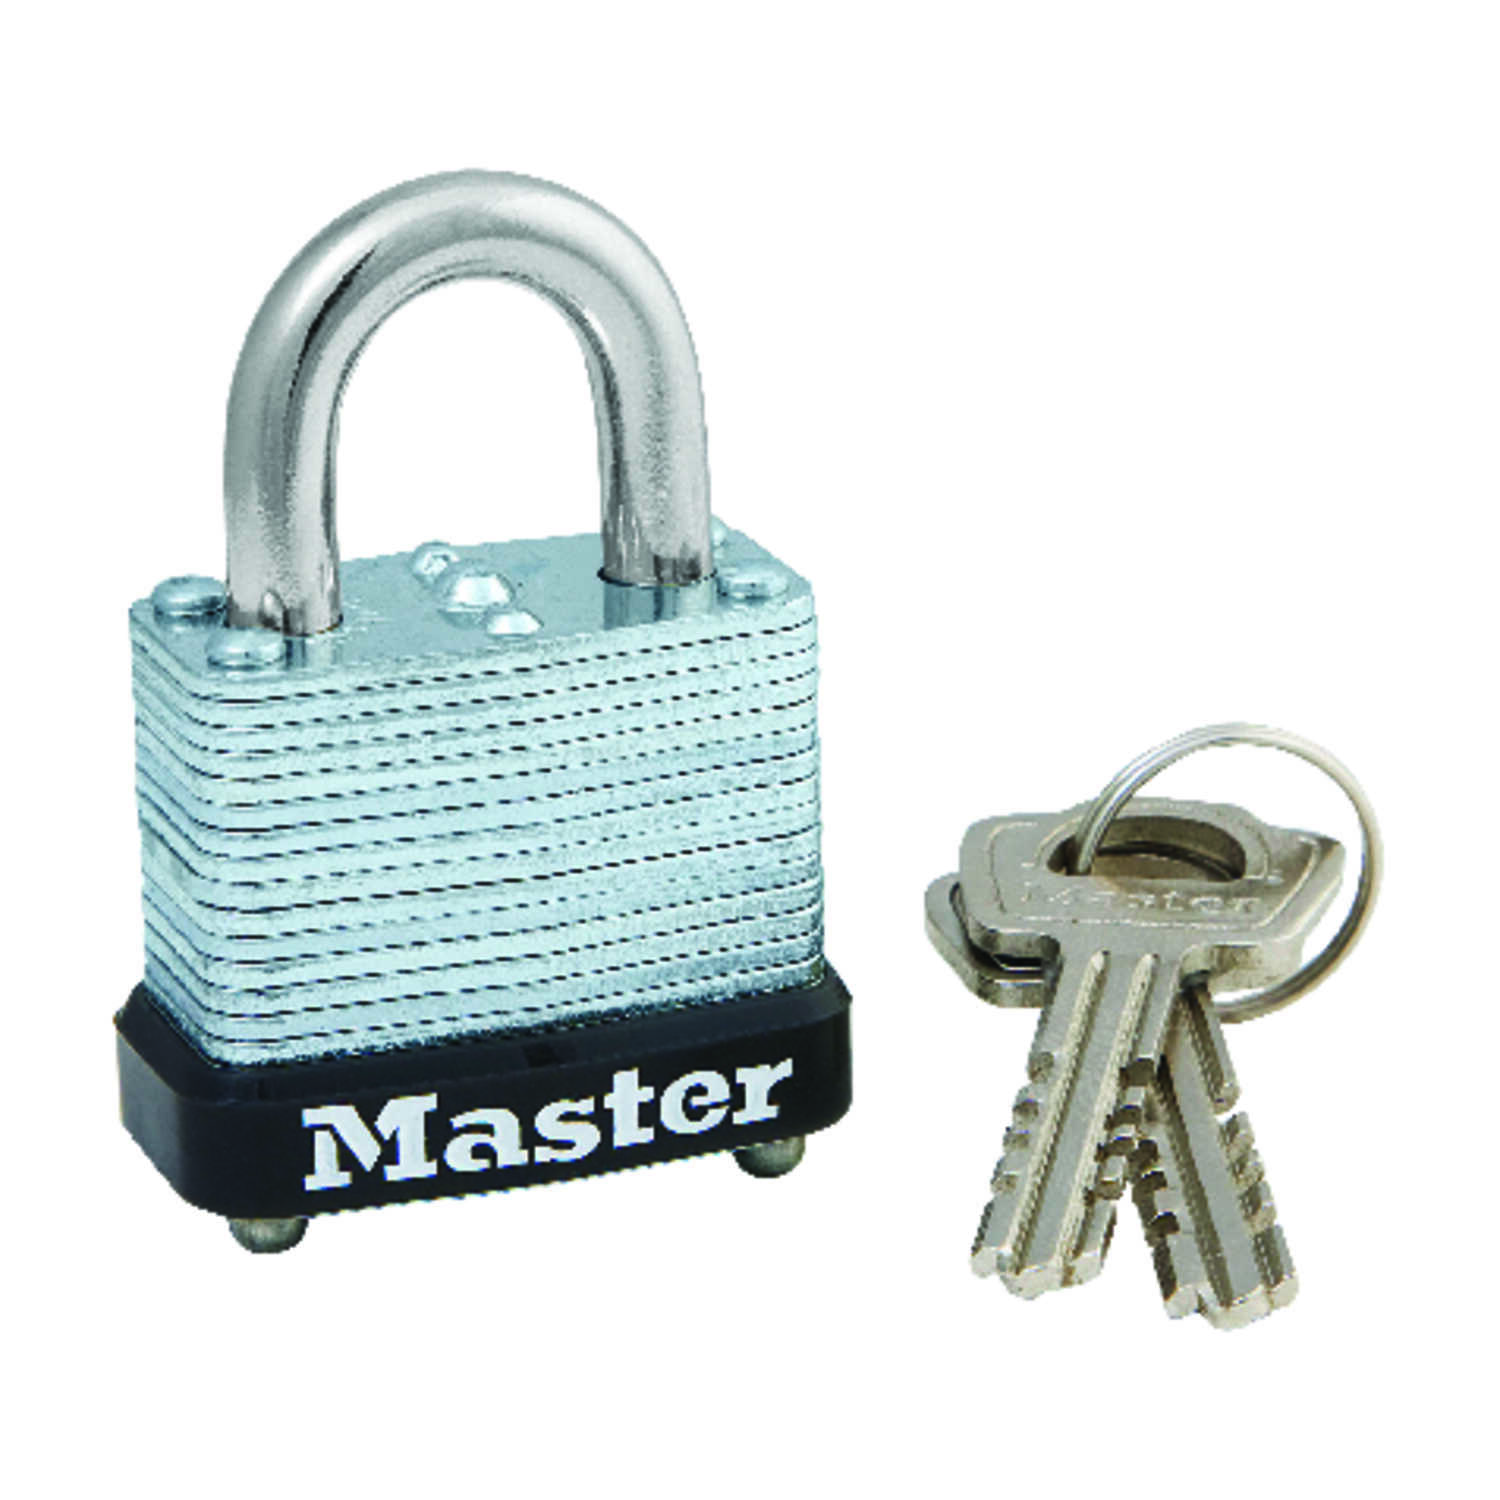 Master Lock  3/4 in. W x 1-1/8 in. L x 1-1/16 in. H Laminated Steel  Warded Locking  Padlock  1 each